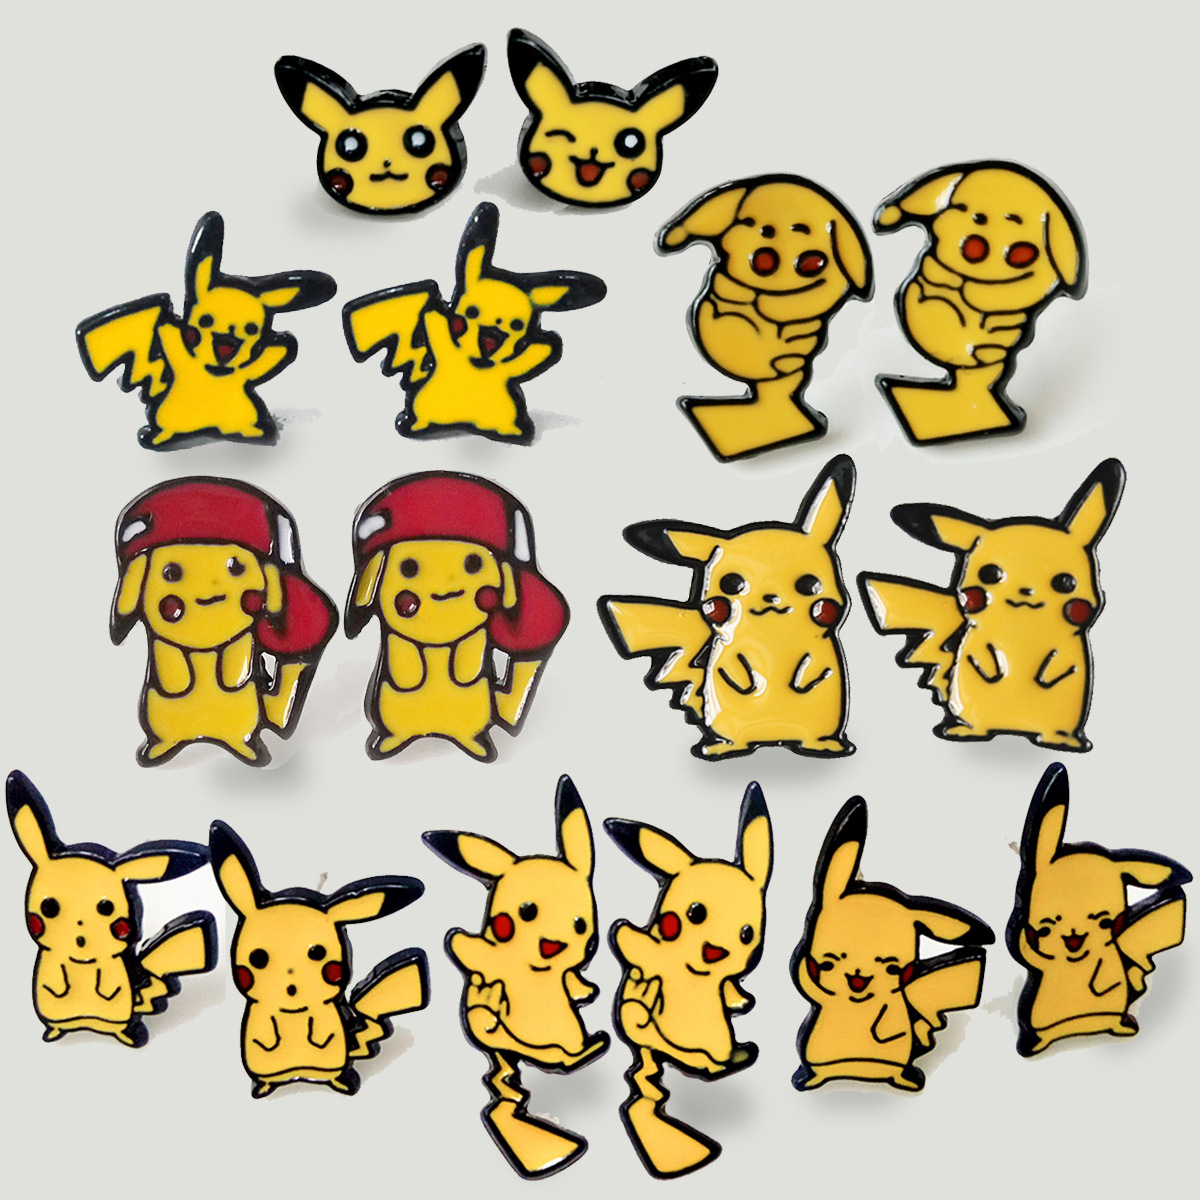 ohcomics-1-pair-pocket-monster-cartoon-font-b-pokemon-b-font-pikachu-earring-stud-enamel-yellow-earrings-ear-stud-jewelry-girl-kids-gifts